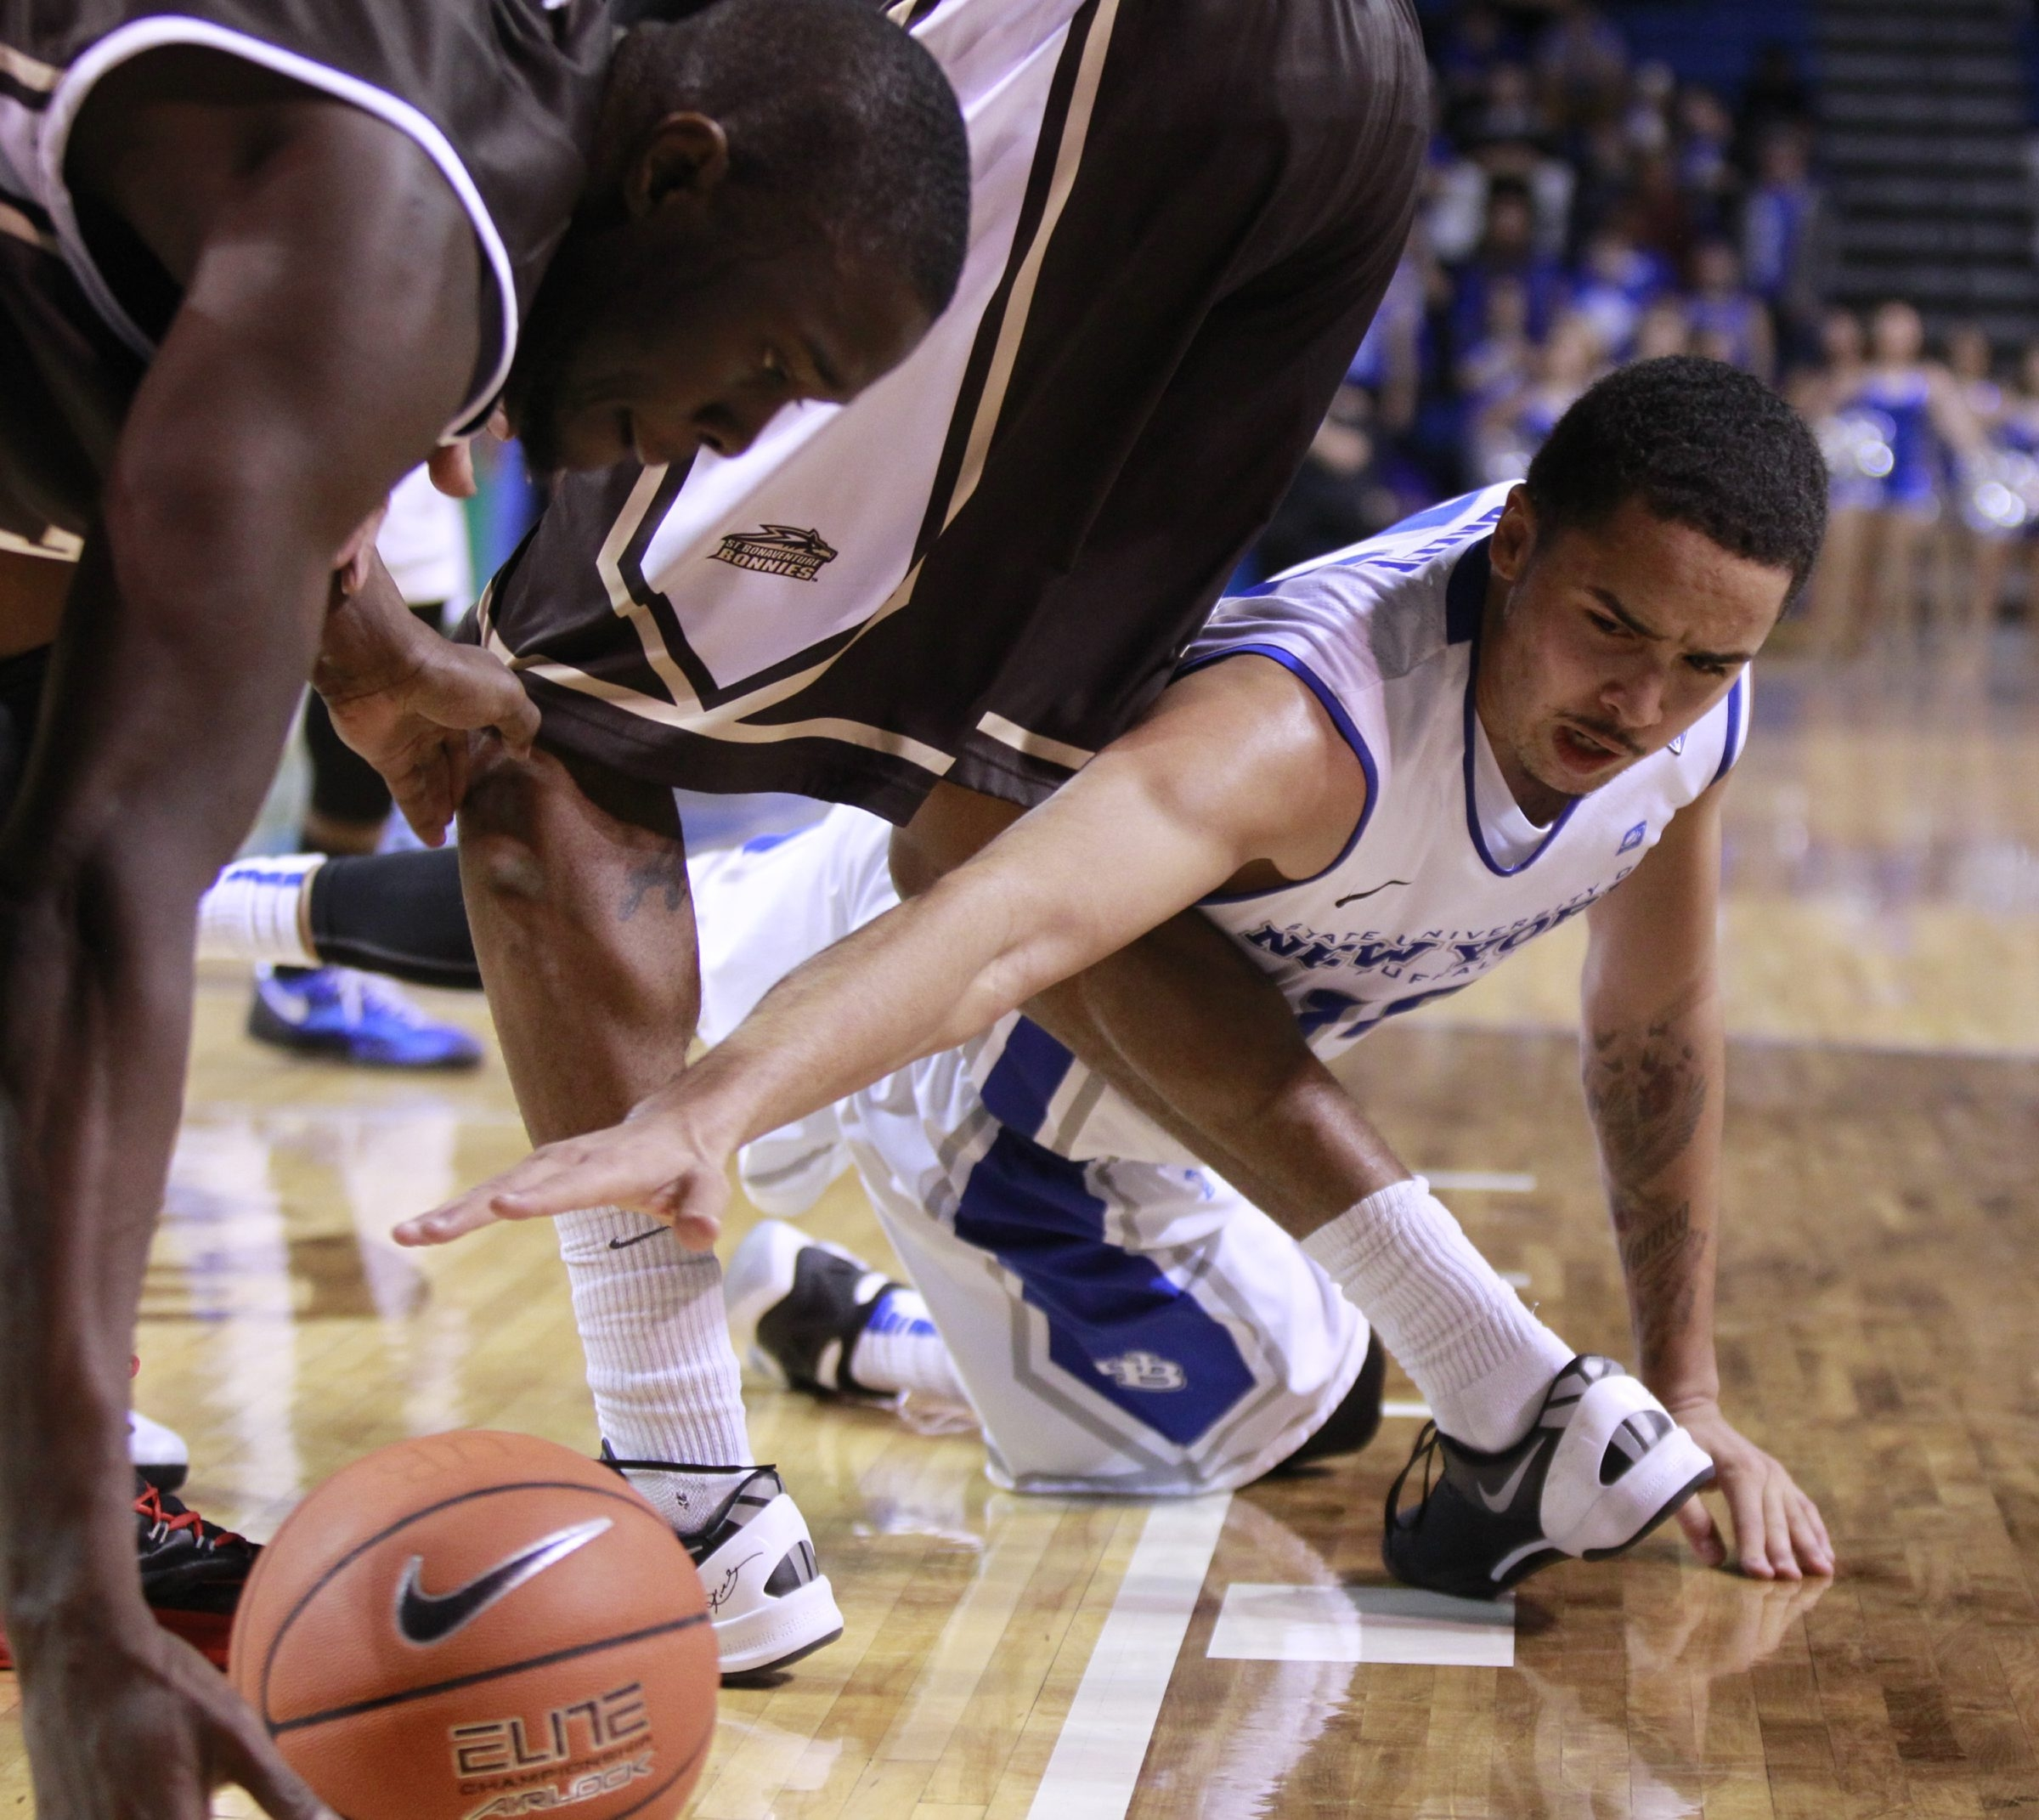 Buffalo basketball player,Jarryn Skeete (10) battles for a loose ball with St. Bonaventure  player, Youssou Ndoye (35) during second half action at Alumni Arena,on,Saturday, Dec. 7, 2013(Harry Scull Jr./Buffalo News)